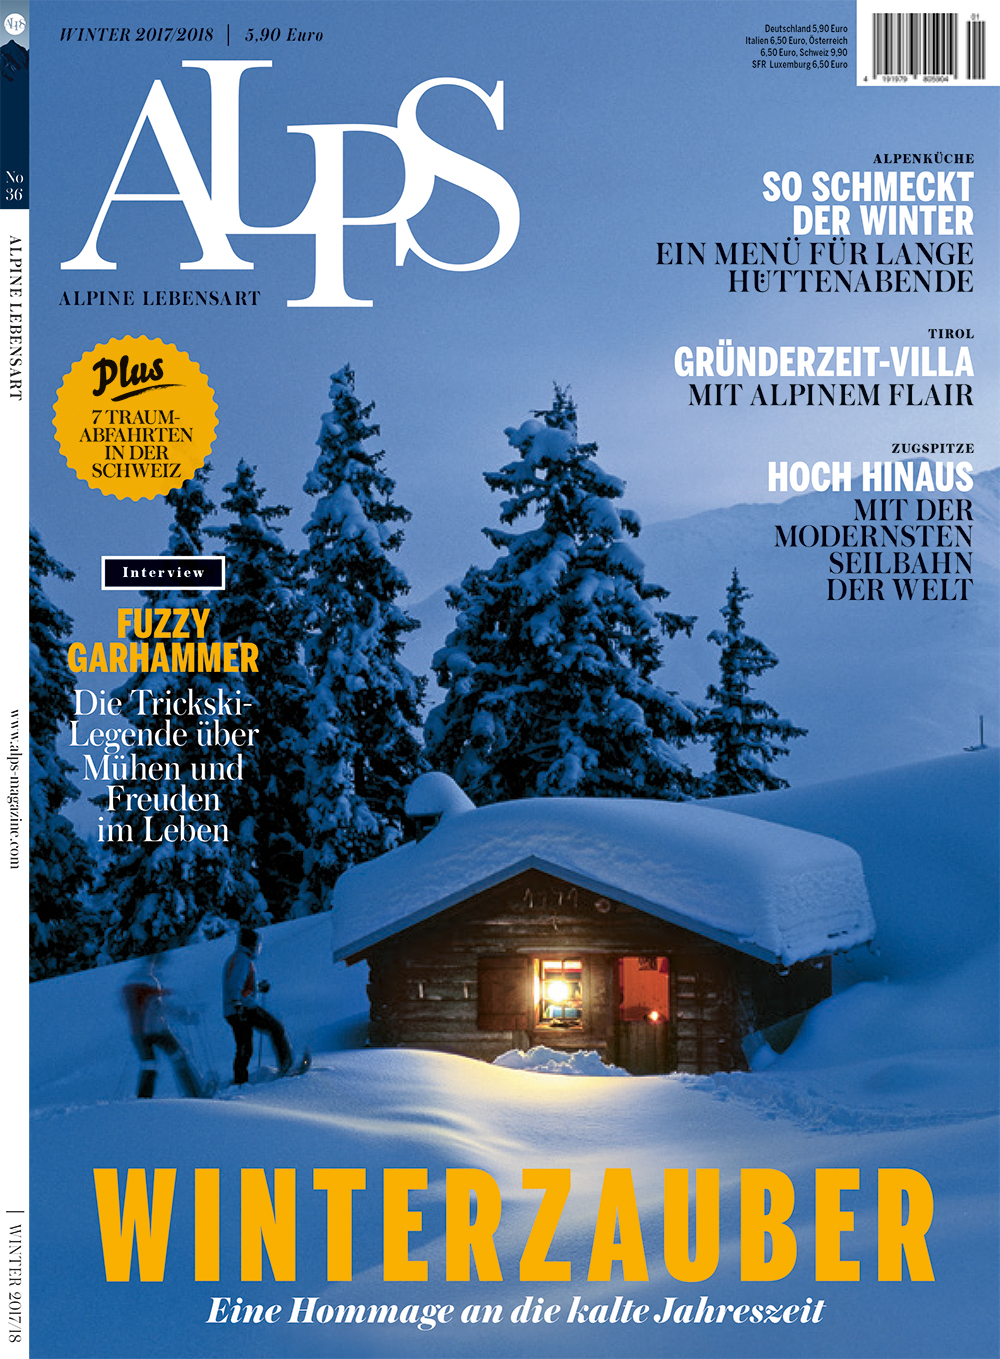 Alps Cover #36 Winter 2017